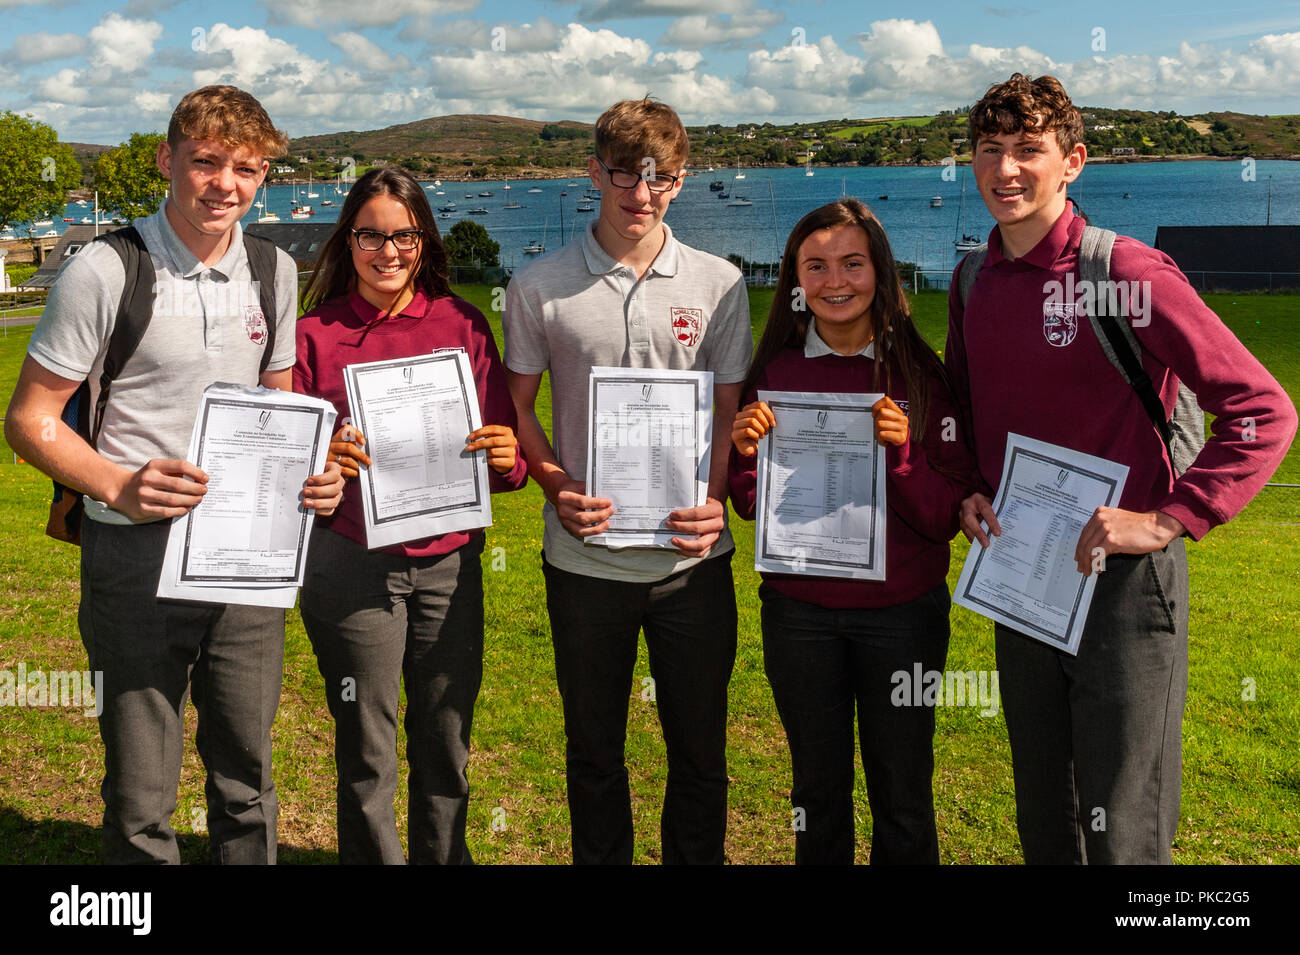 Schull, West Cork, Ireland. 12th Sept, 2018.  Over 62,500 students received their Junior Cert results today. Pictured with their results are Tiernan Collins, Laura Guynolan, Matthew Sheehan. Laura Kennedy and Dan Arundel-McSweeney. Credit: Andy Gibson/Alamy Live News. - Stock Image